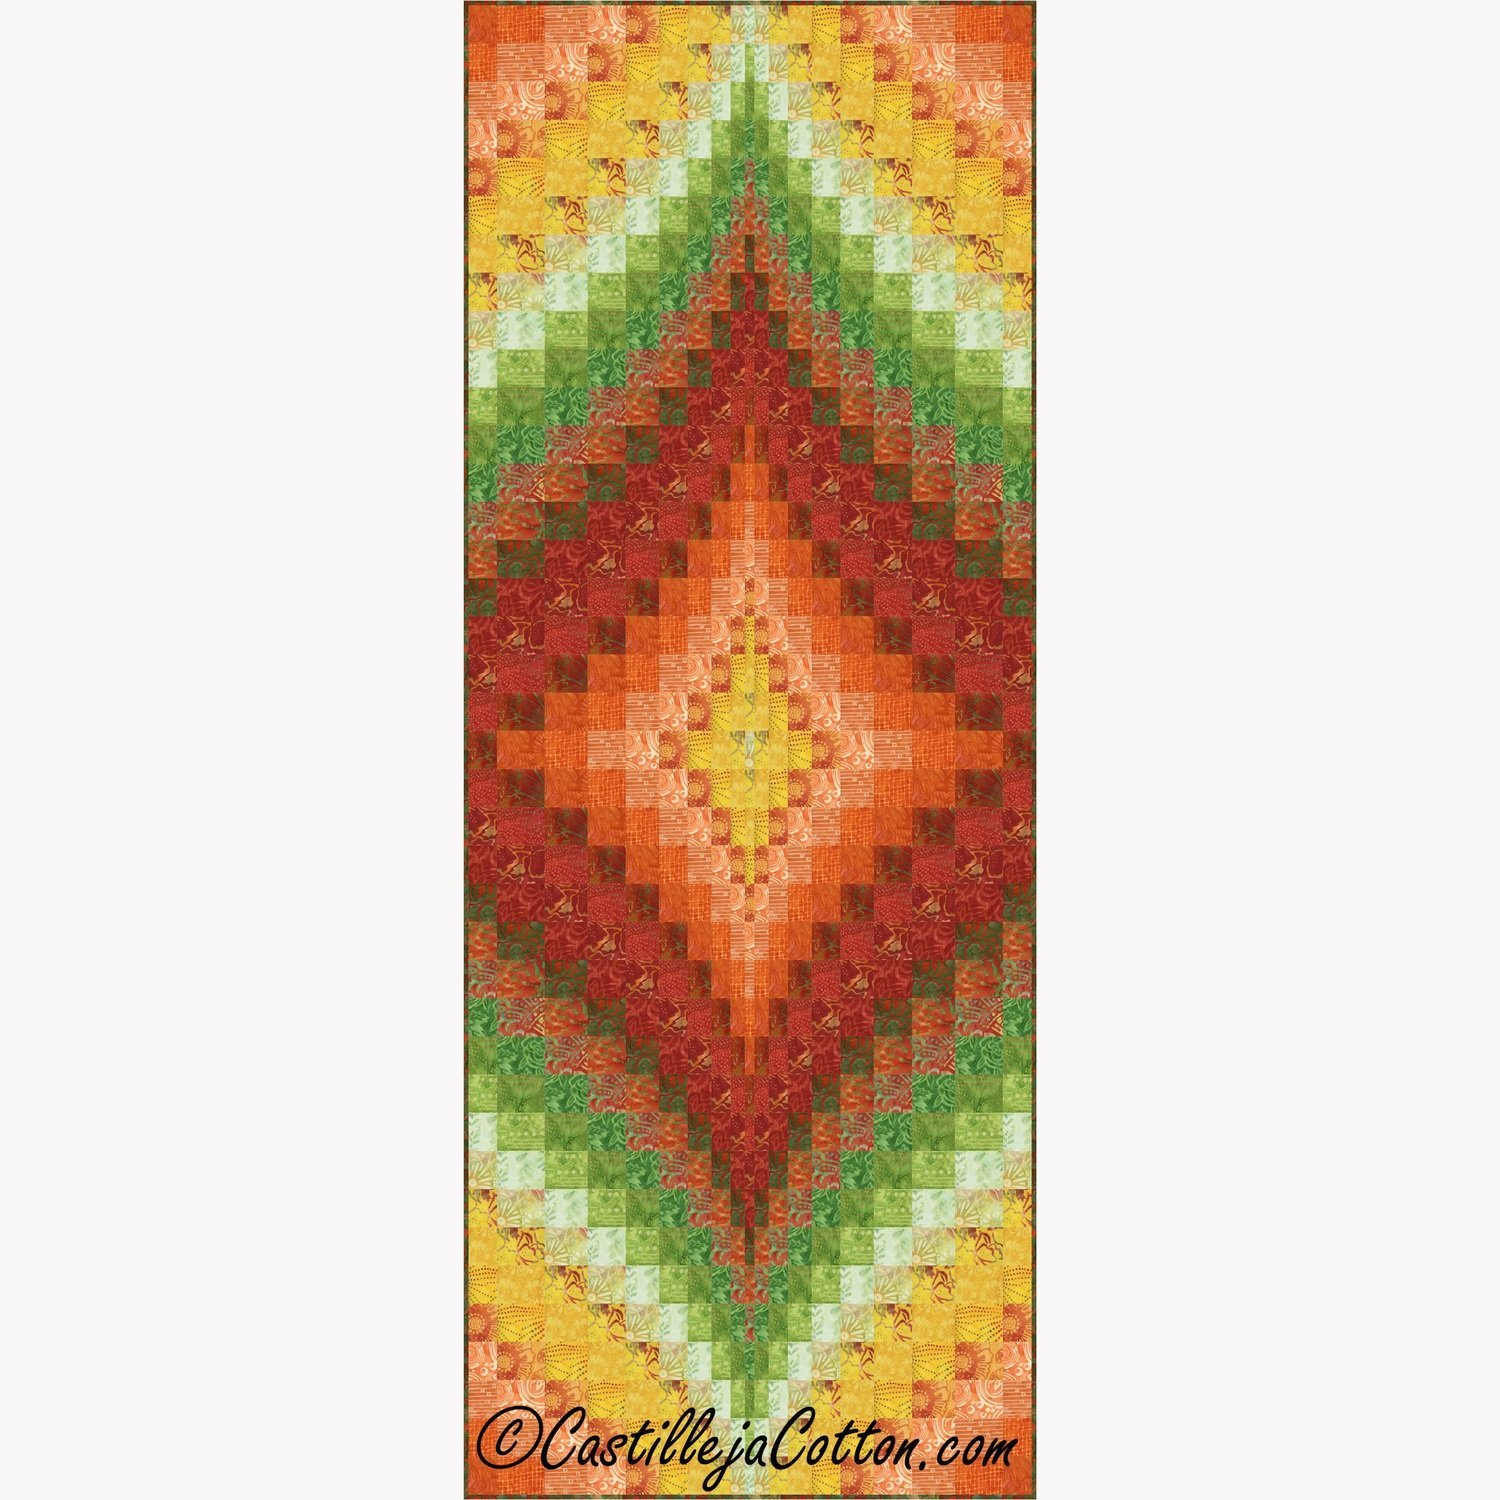 Fire Within - Sunburst Tablerunner/Wall Quilt EPattern by Castilleja Cotton